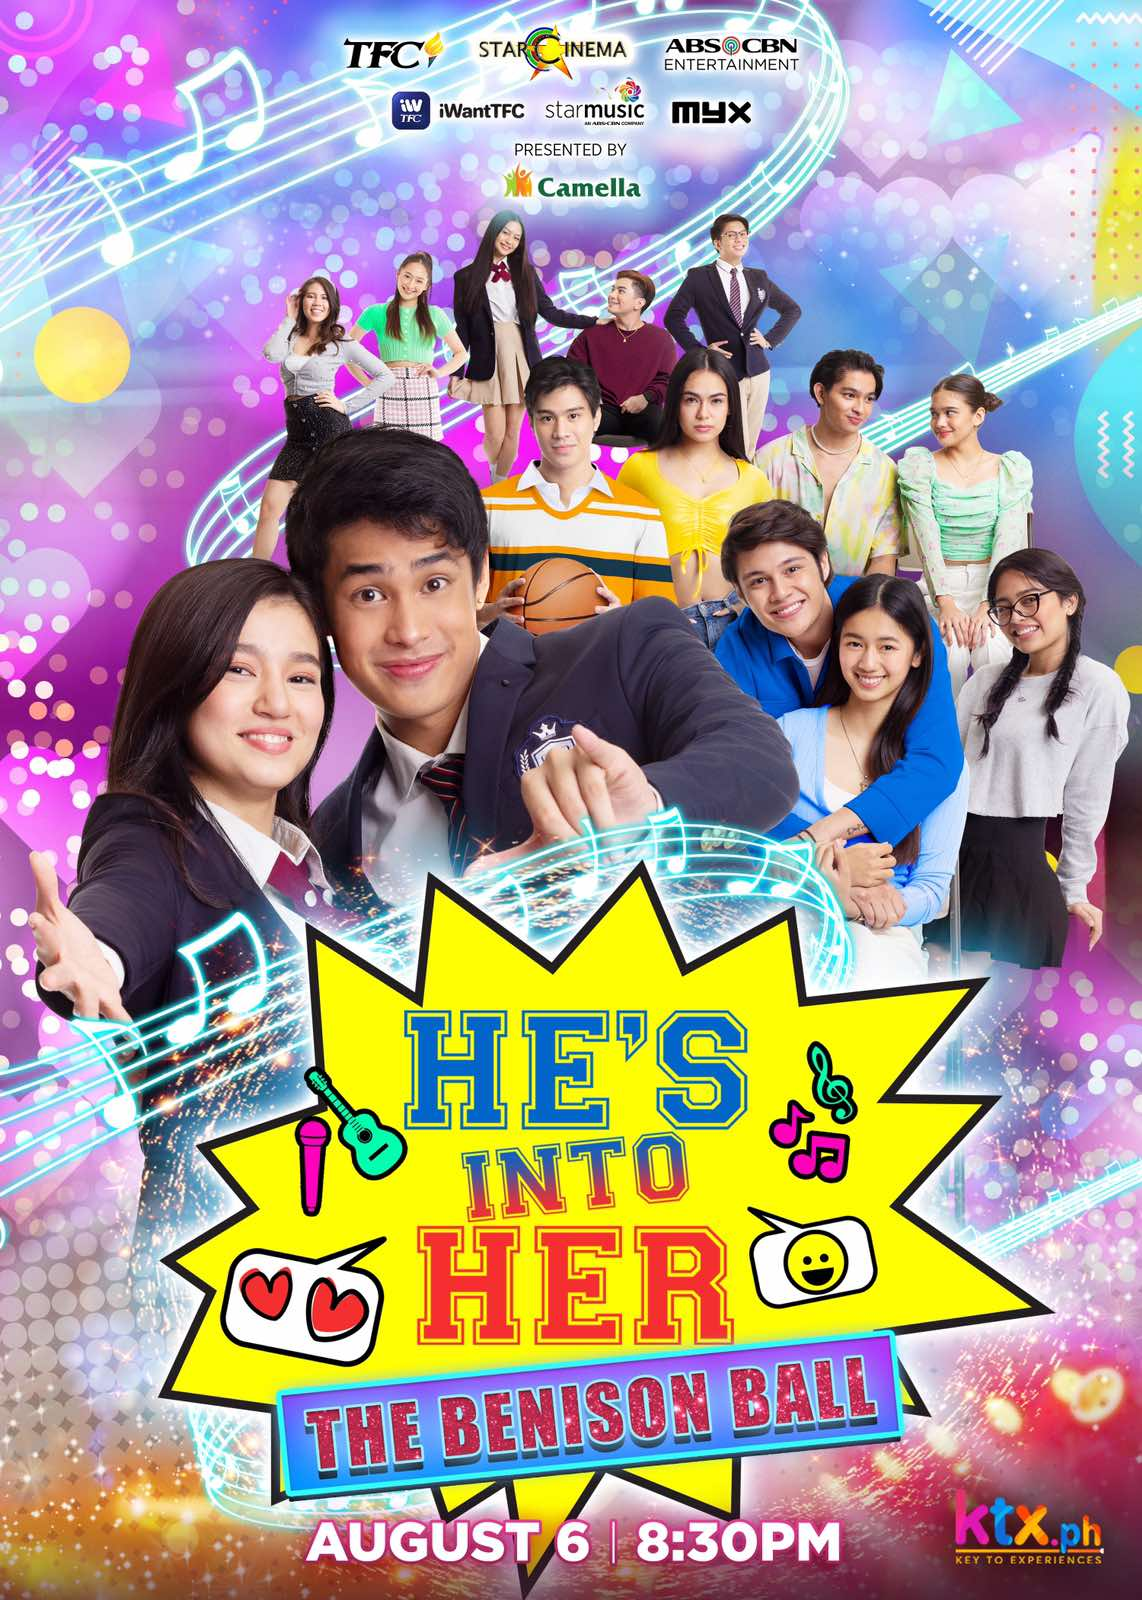 VIP tickets for the 'He's Into Her' concert sold out